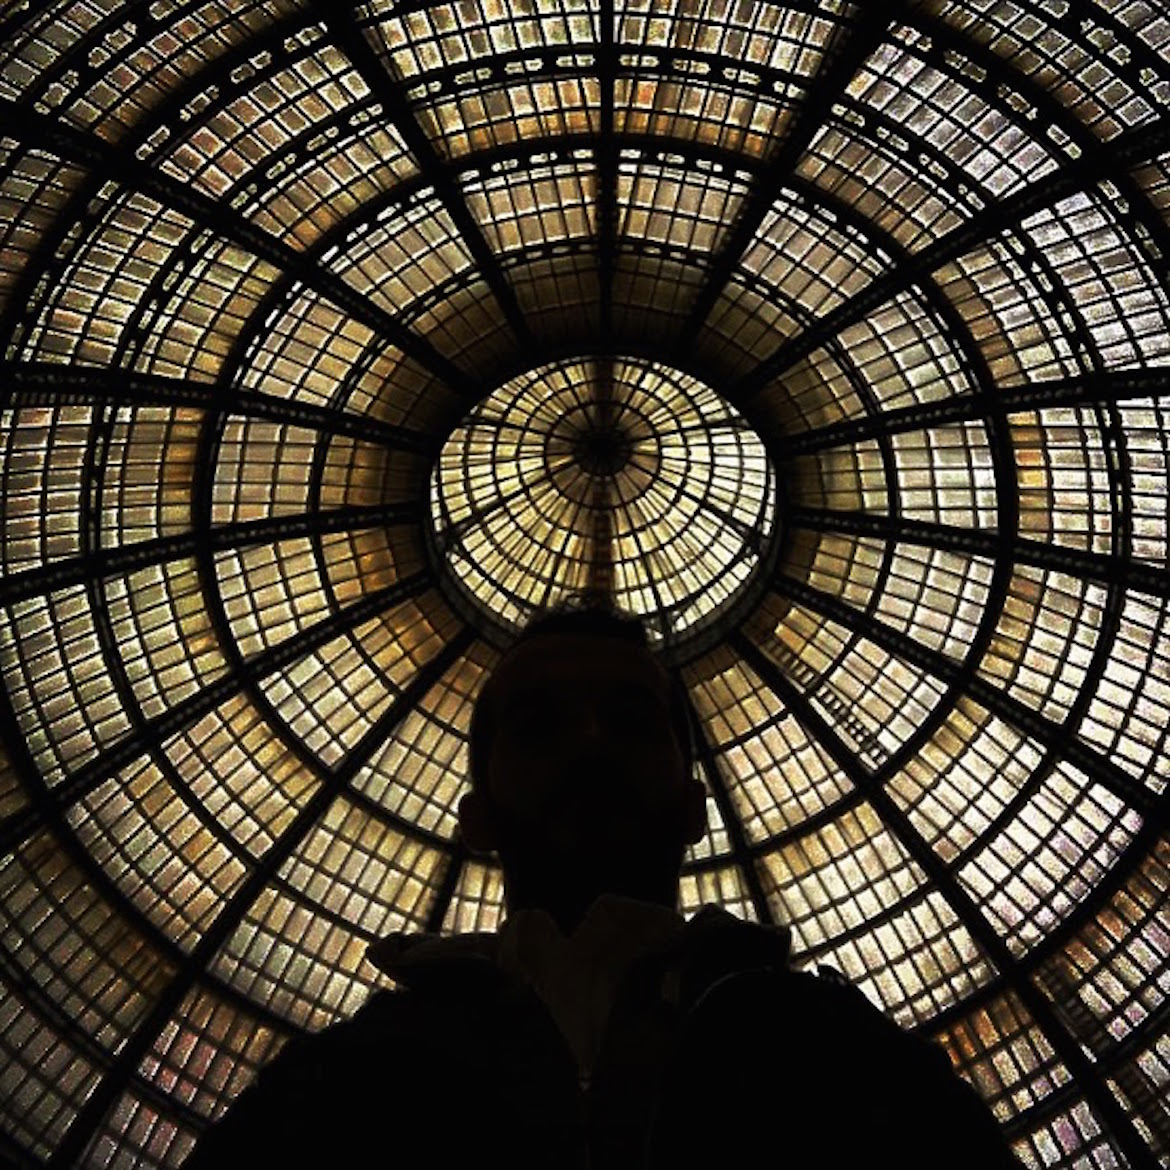 Contre-lumiere at Galleria Vittorio Emanuele